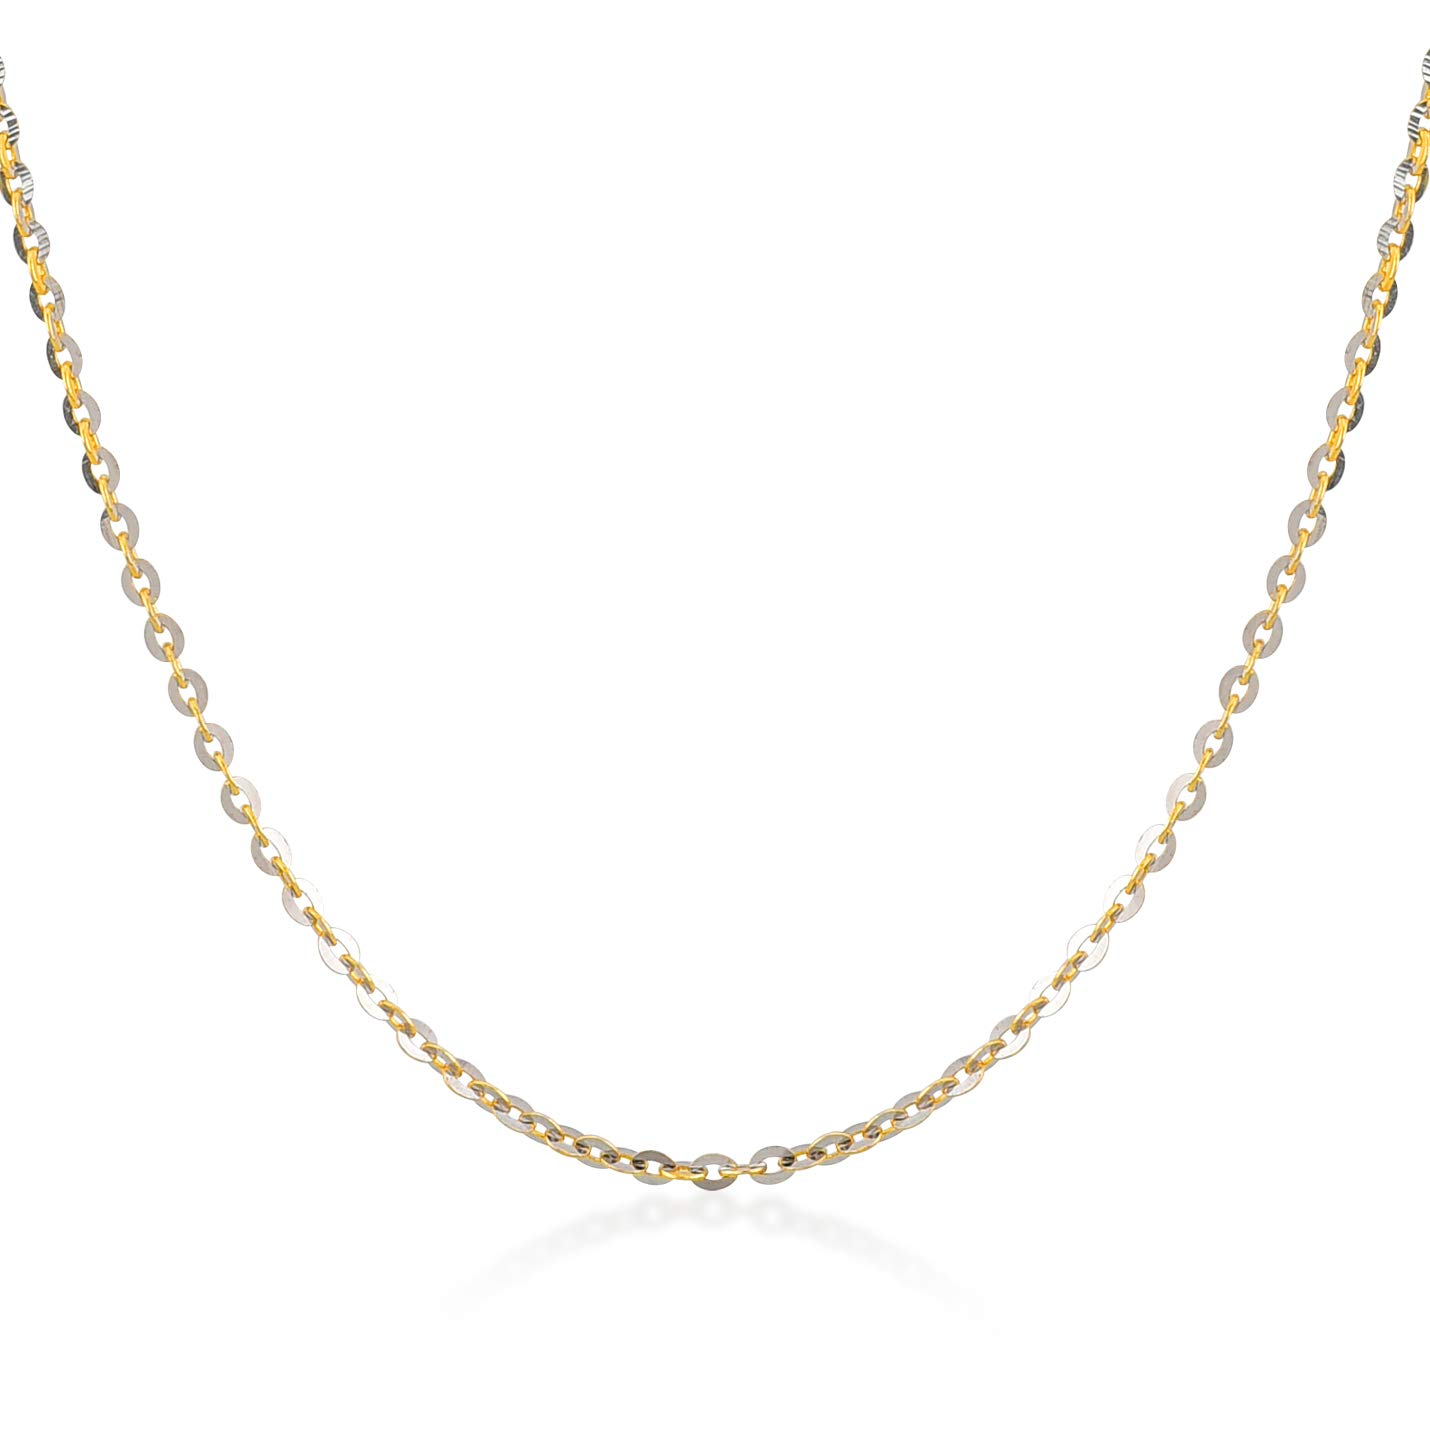 Gelin 14k Two Tone Gold 1.0 mm Pave Crystal Cable Ghost Chain for Women and Men,18''